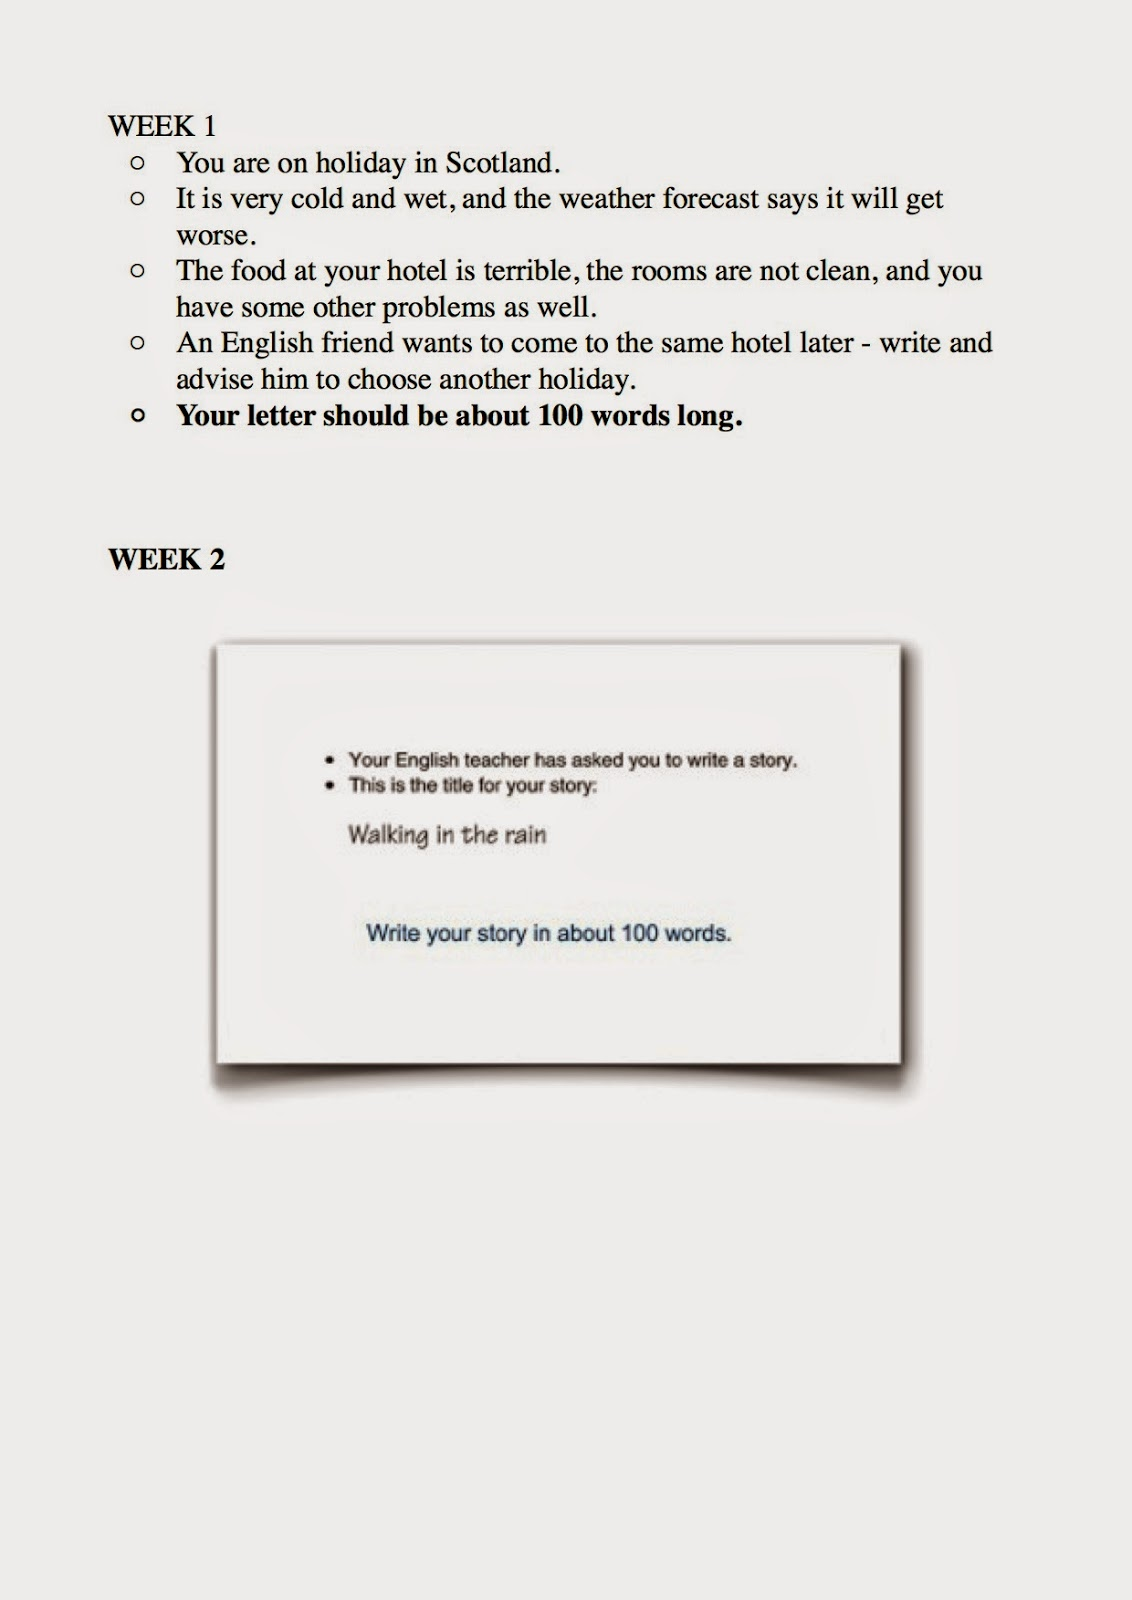 Writings examples b1 - WRITING AN INFORMAL E-MAIL or LETTER Read the